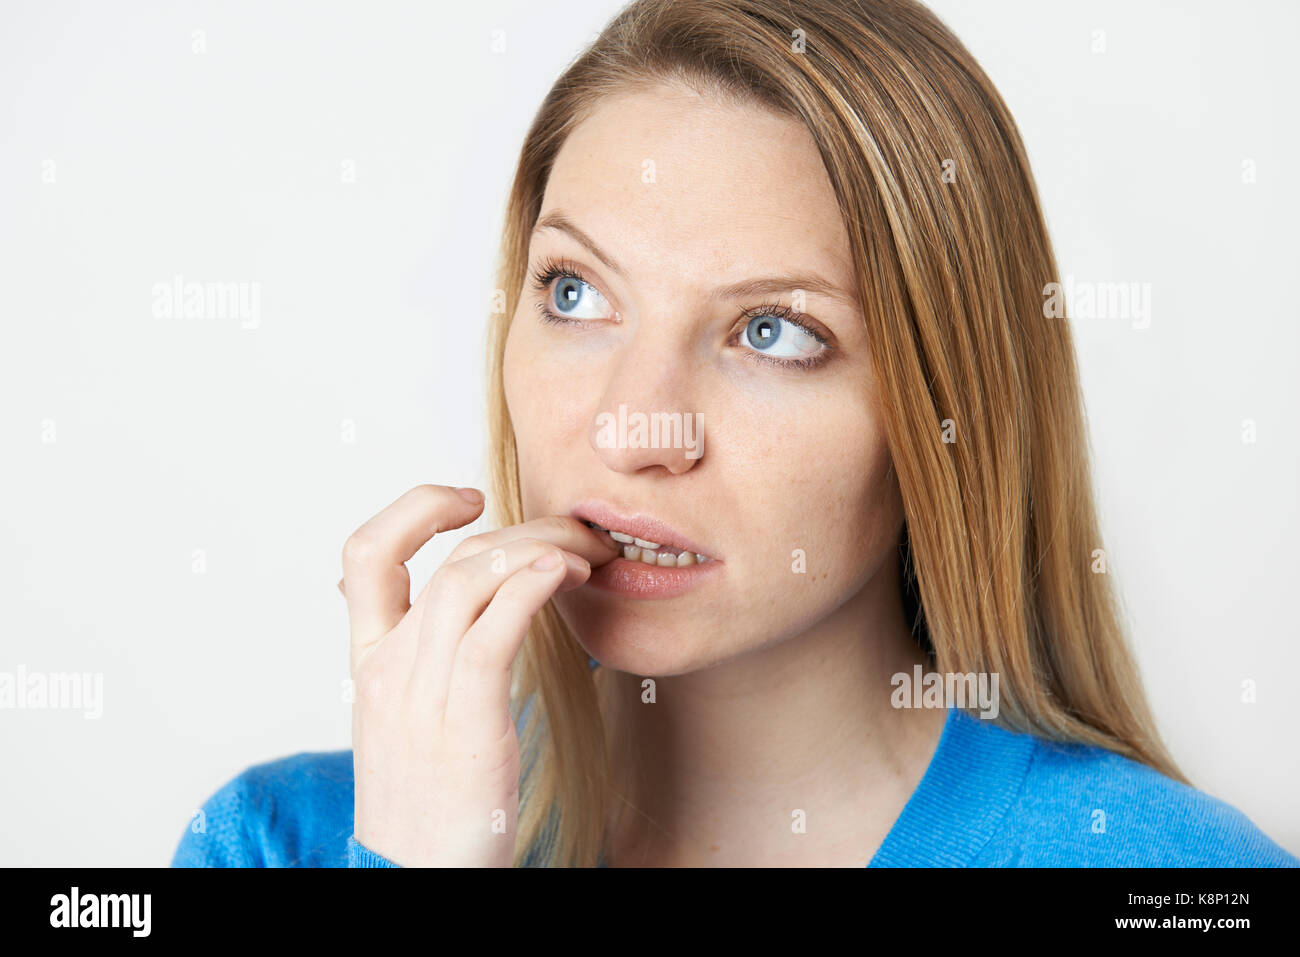 Studio shot of woman biting nails nerveux Photo Stock